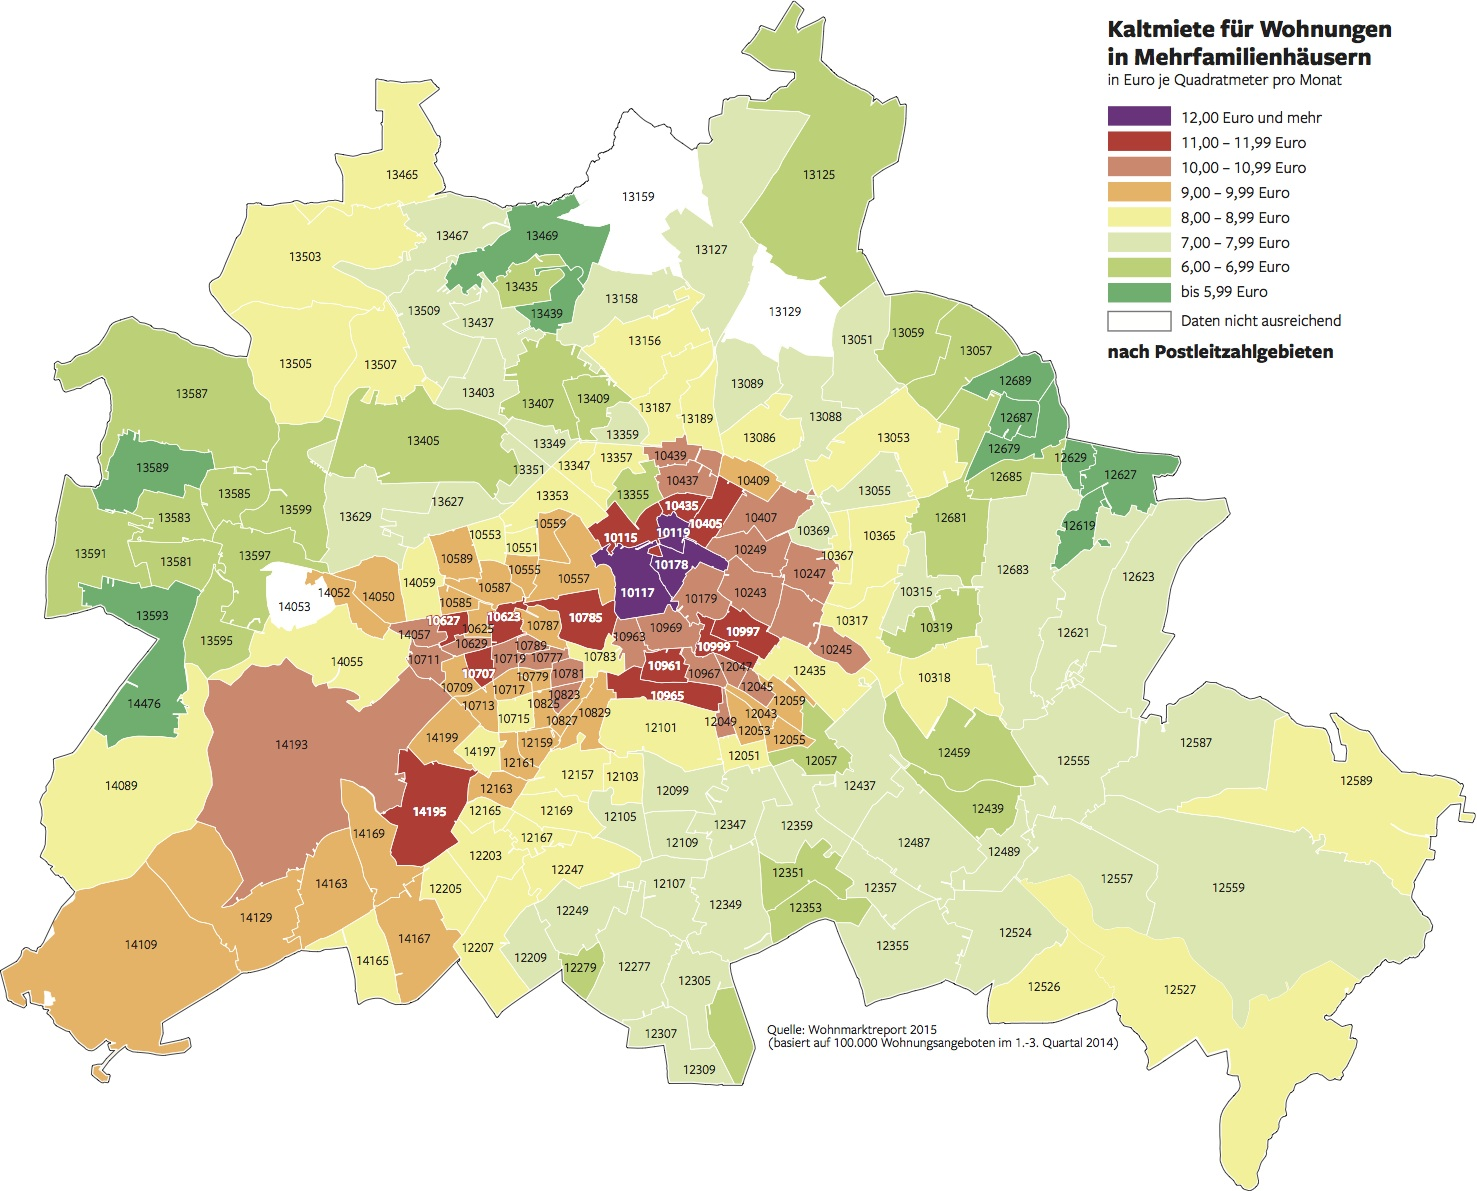 Rental prices in Berlin